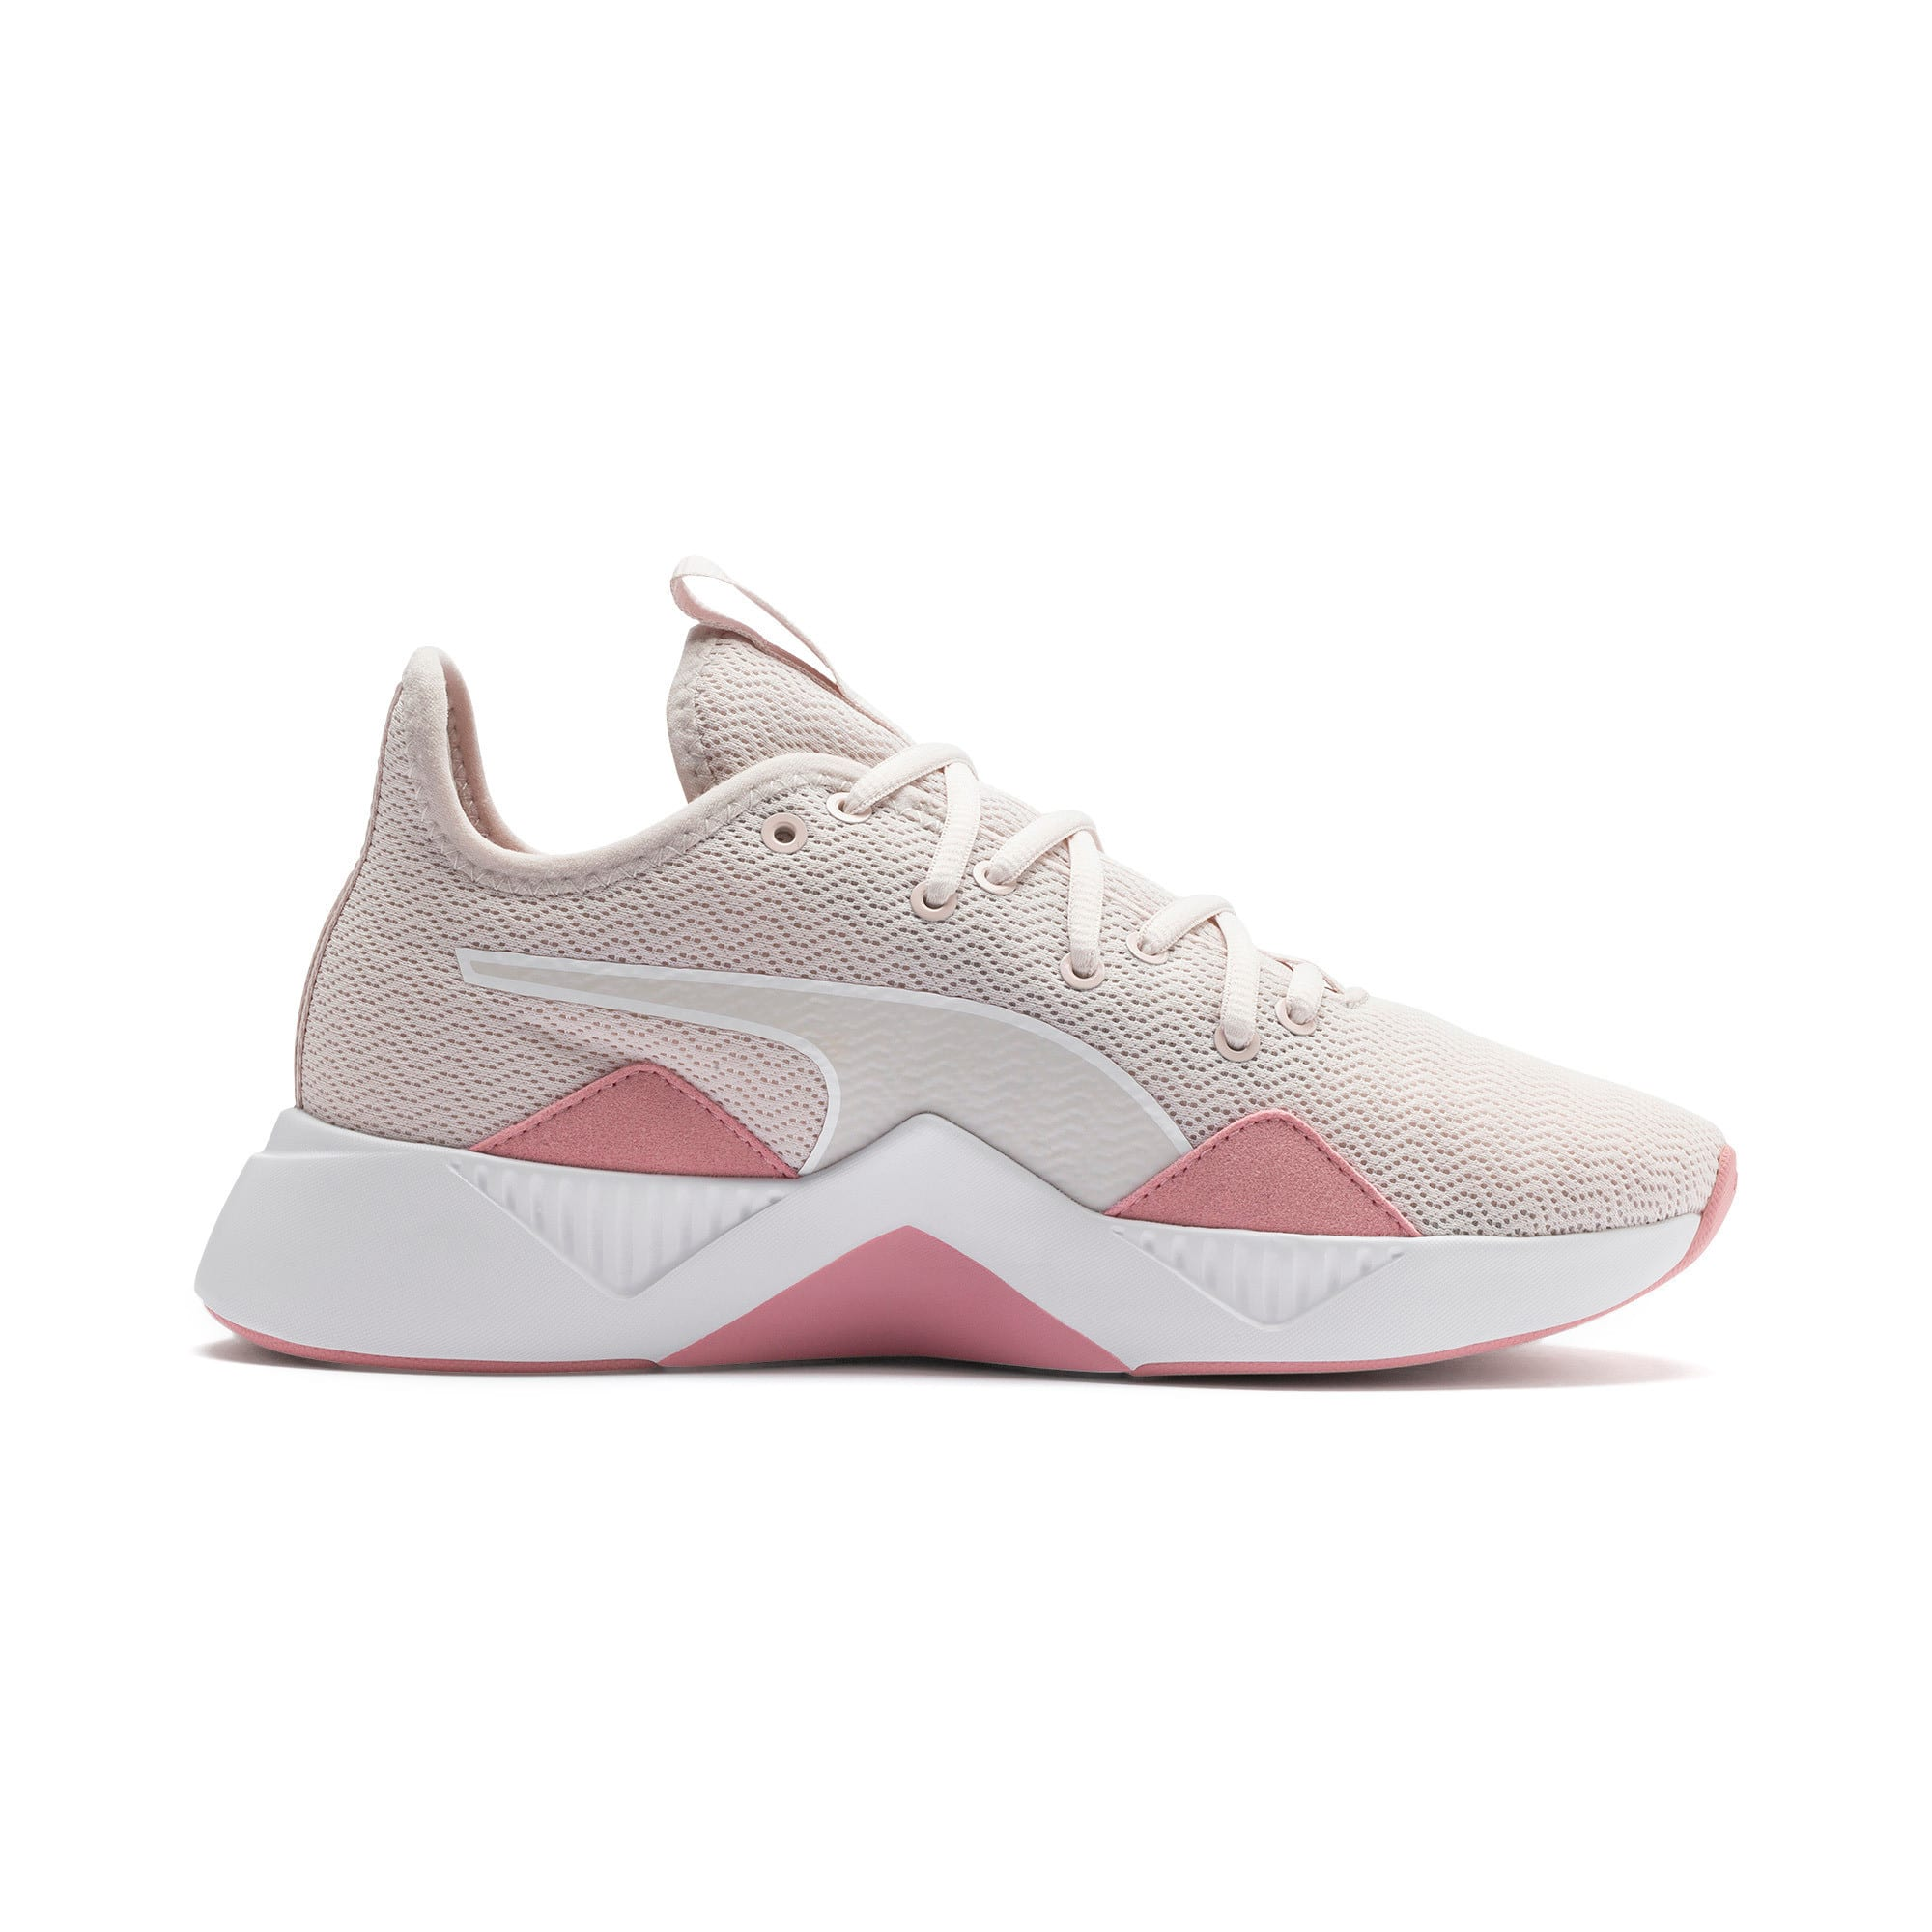 Thumbnail 7 of Incite FS Shift Women's Trainers, Pastel Parchment-Rose-White, medium-IND